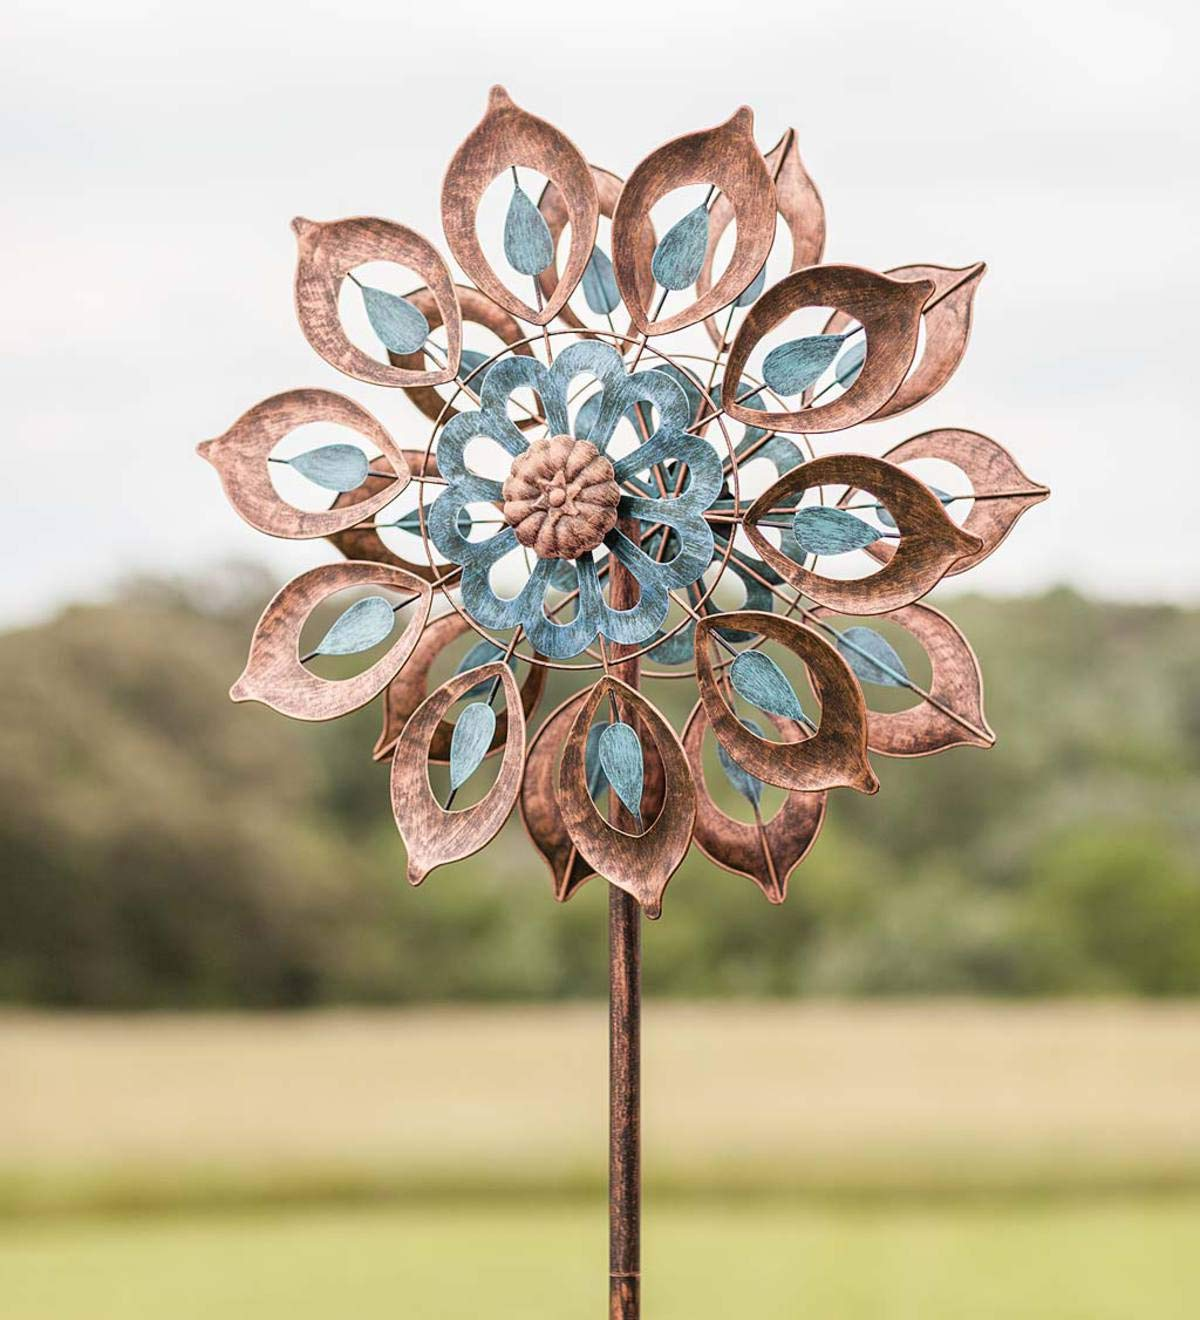 Plow & Hearth Copper Lily Wind Spinner - 24 Dia. x 10.25 D x 75 H by Plow & Hearth